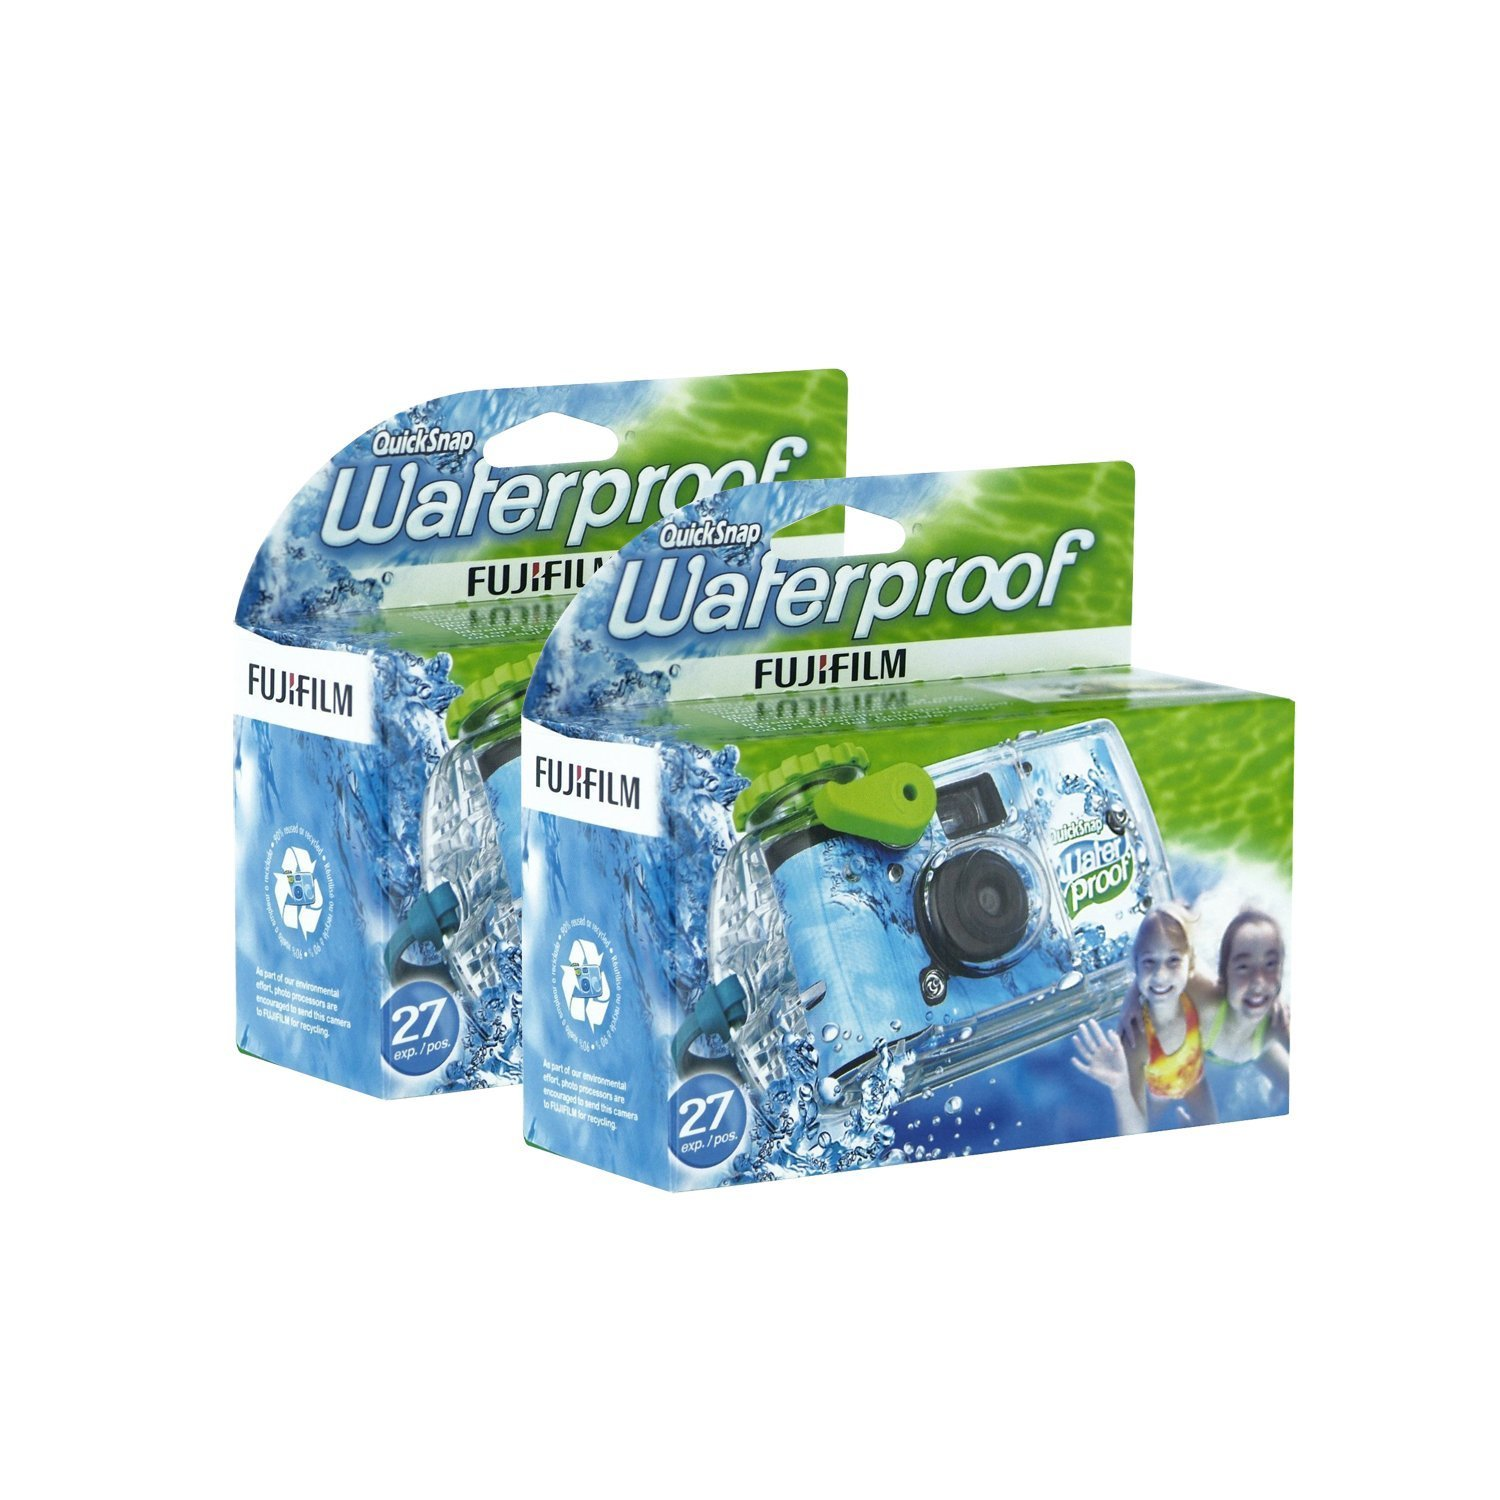 Fujifilm Disposable QuickSnap Waterproof Pool Underwater 35mm Camera, Pack of 2 4331909975